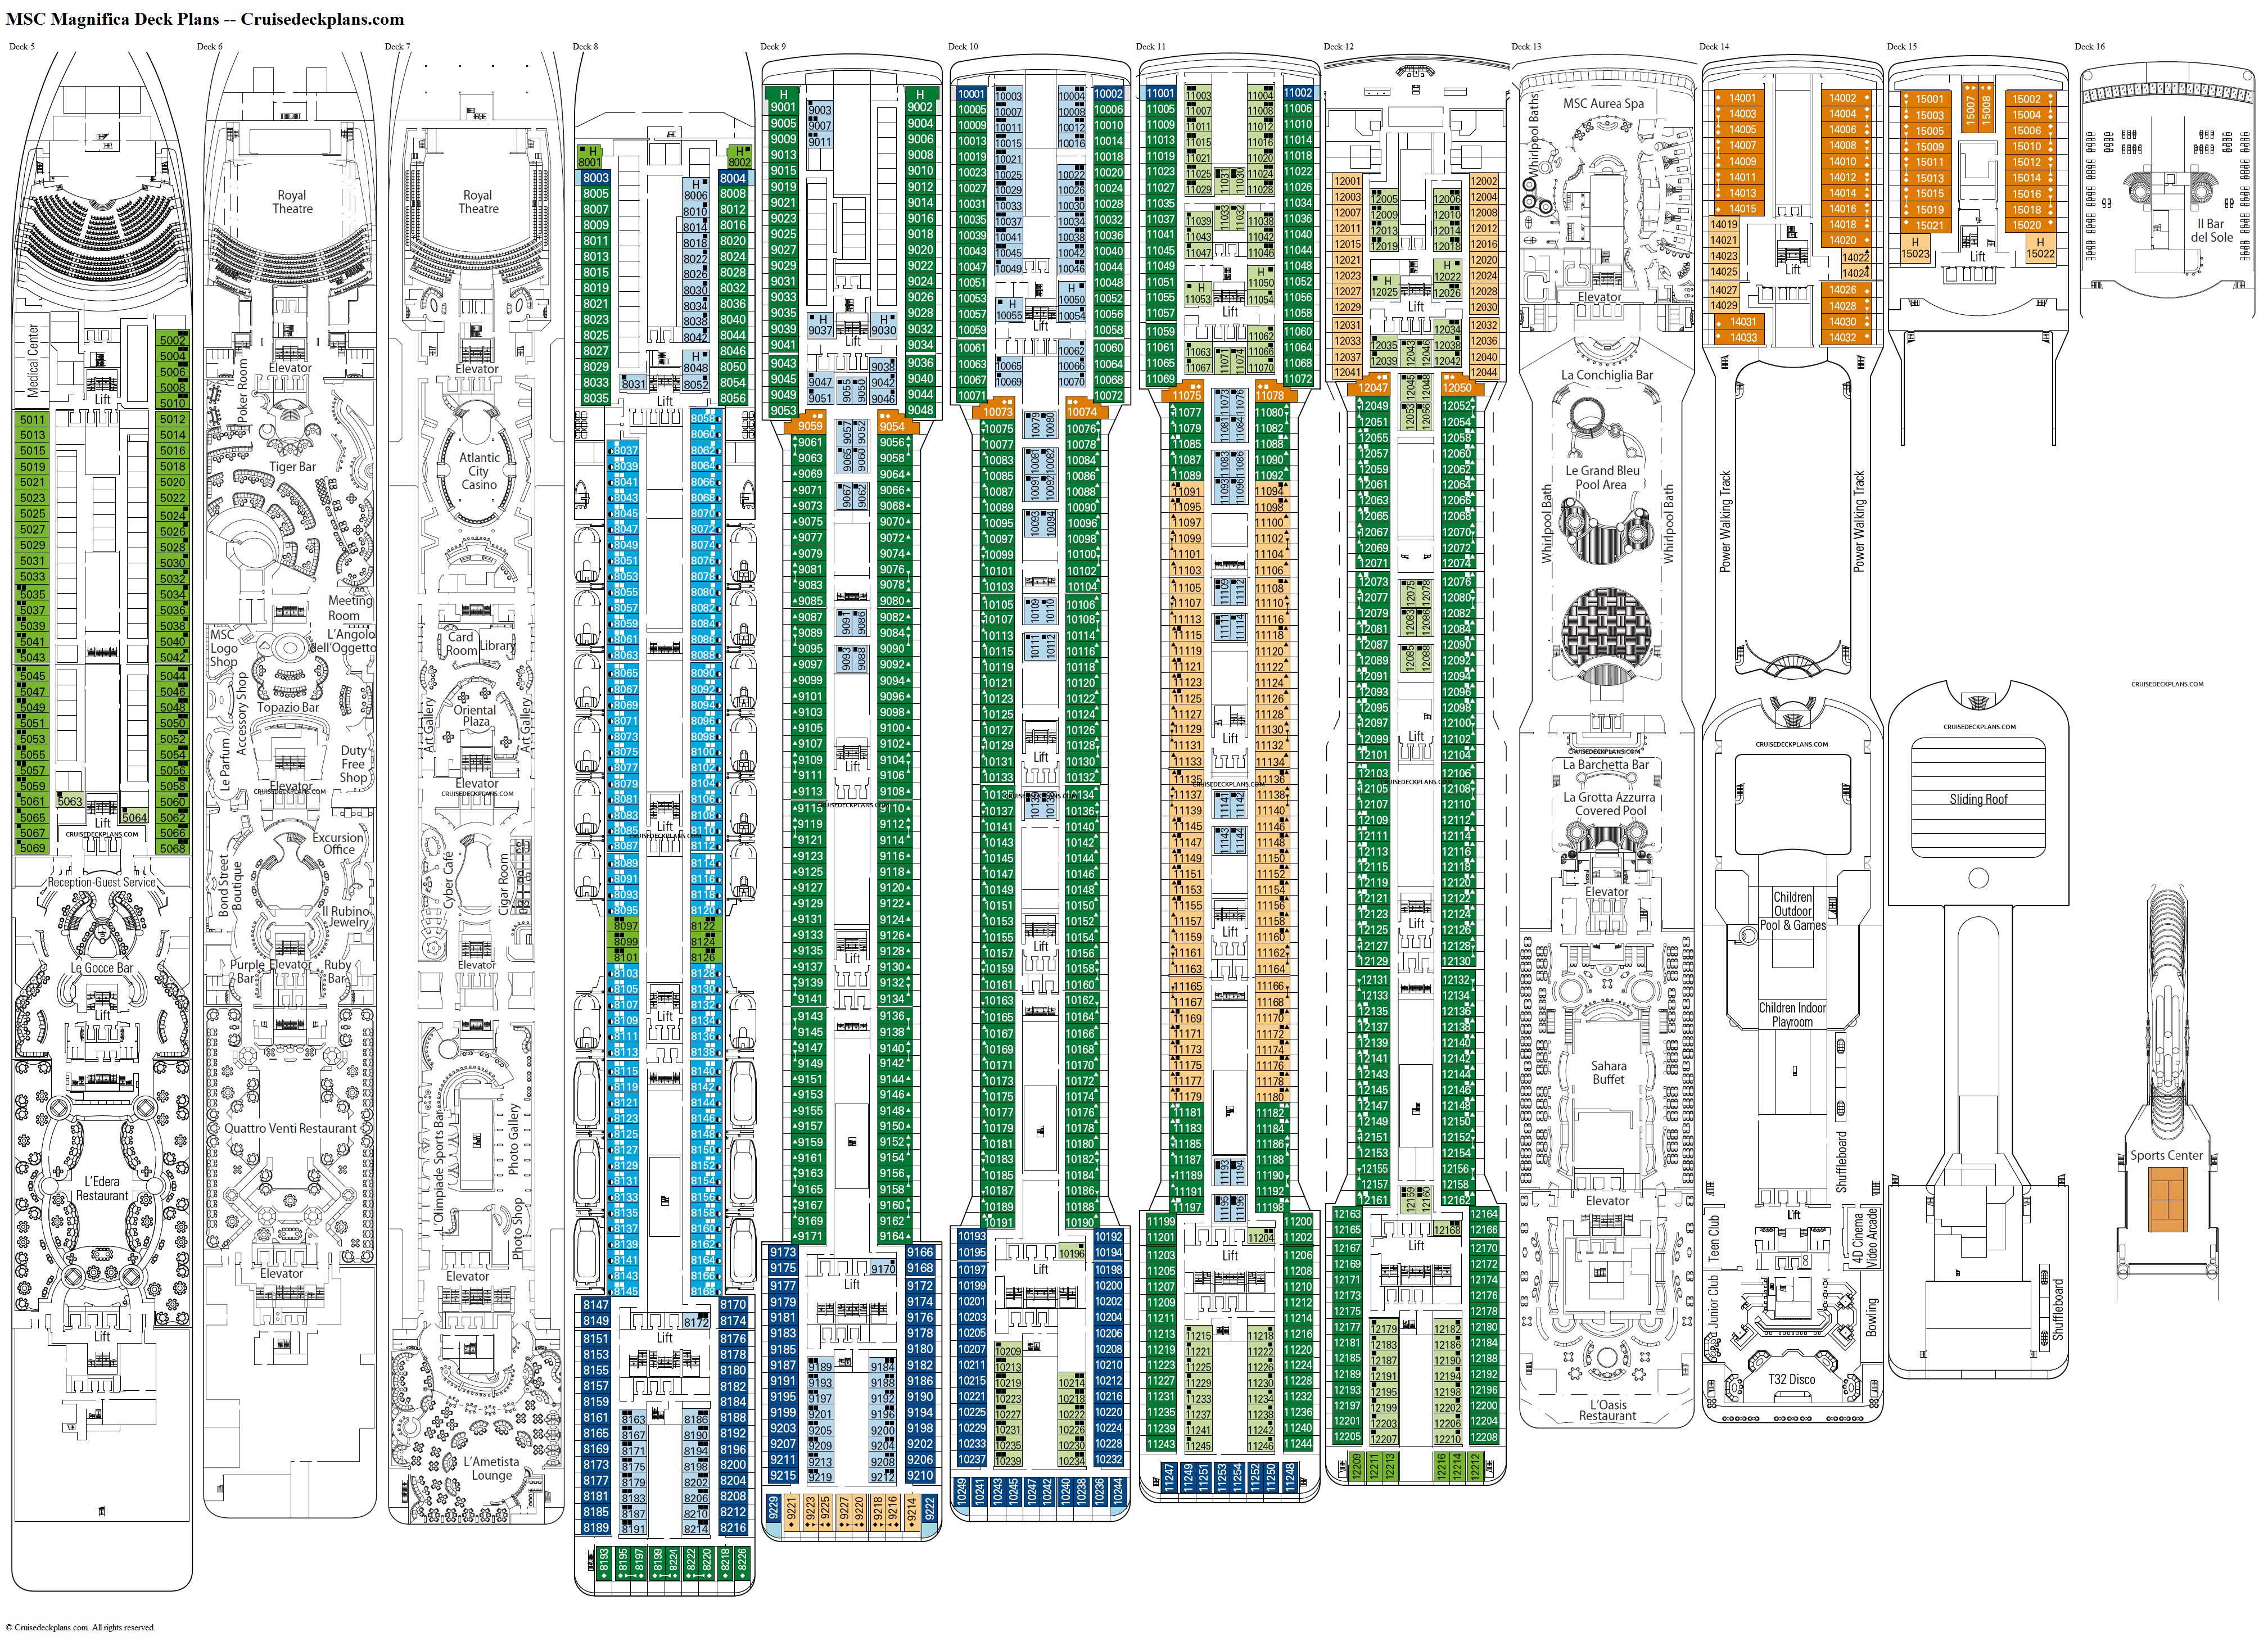 Msc magnifica deck plans diagrams pictures video for Deck blueprints